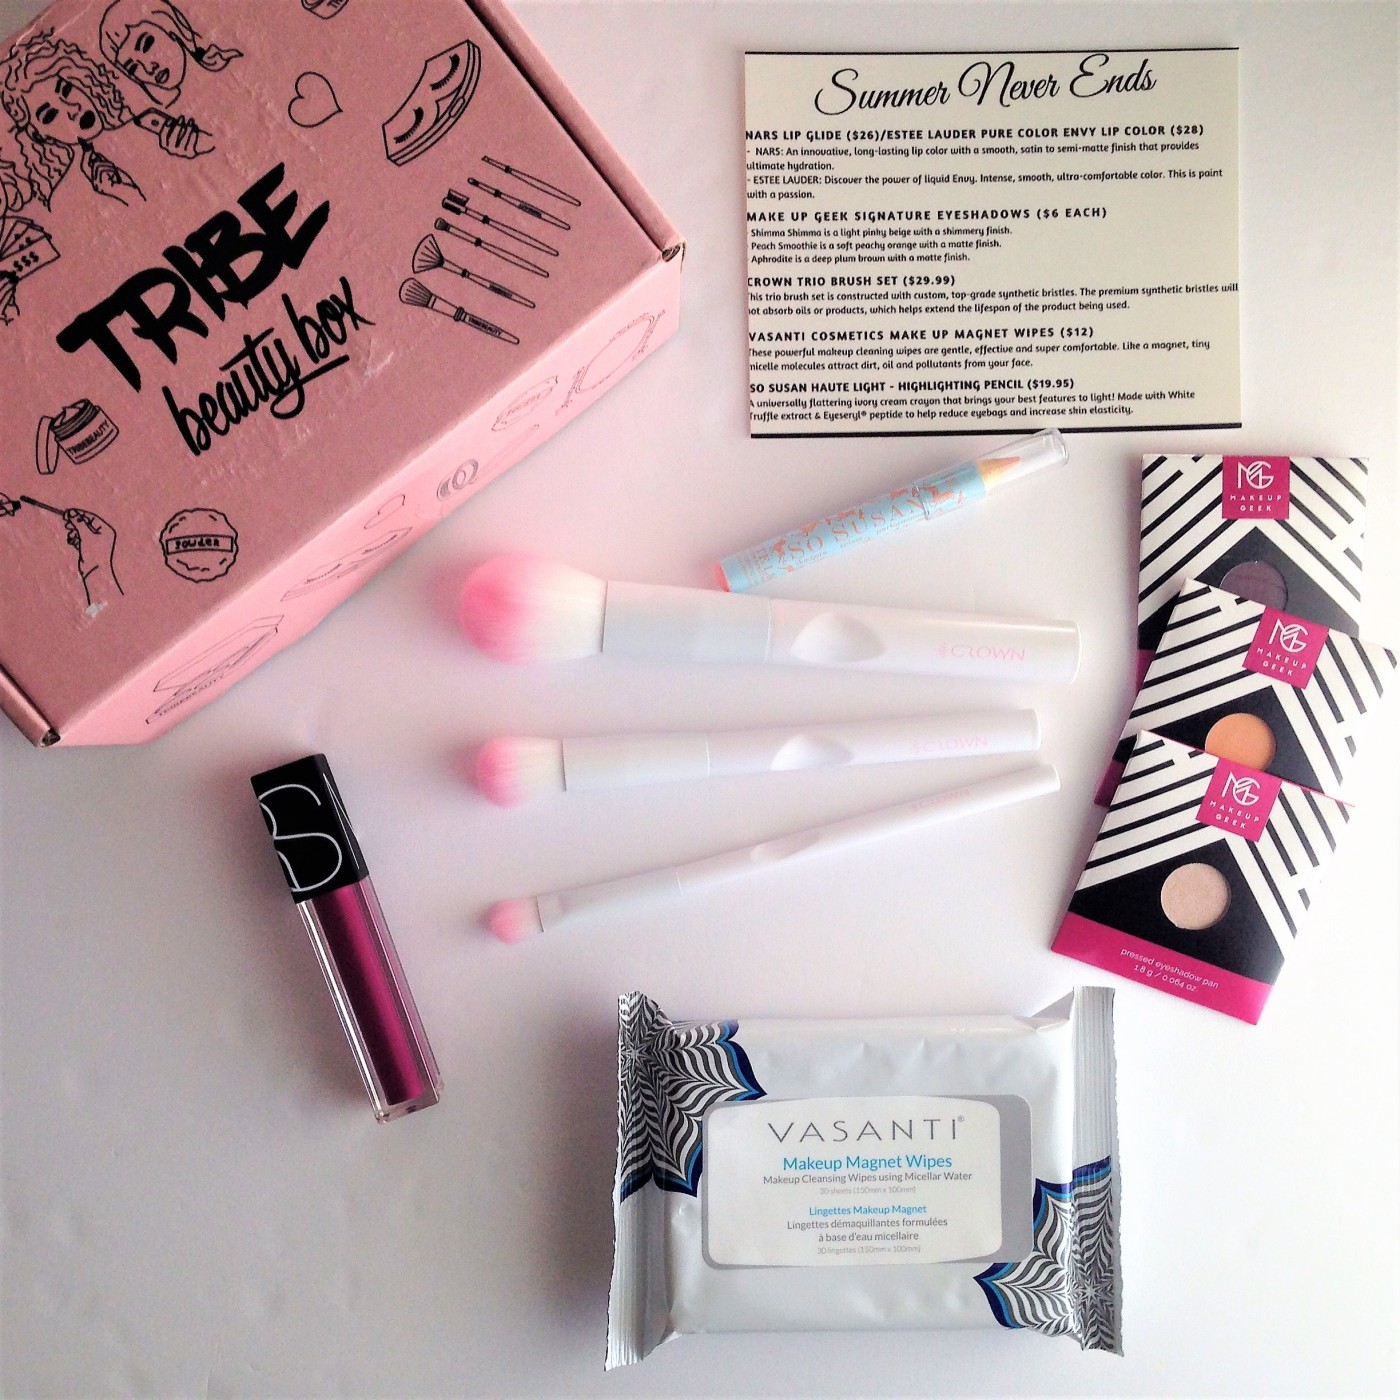 Tribe beauty subscription box August 2018 review